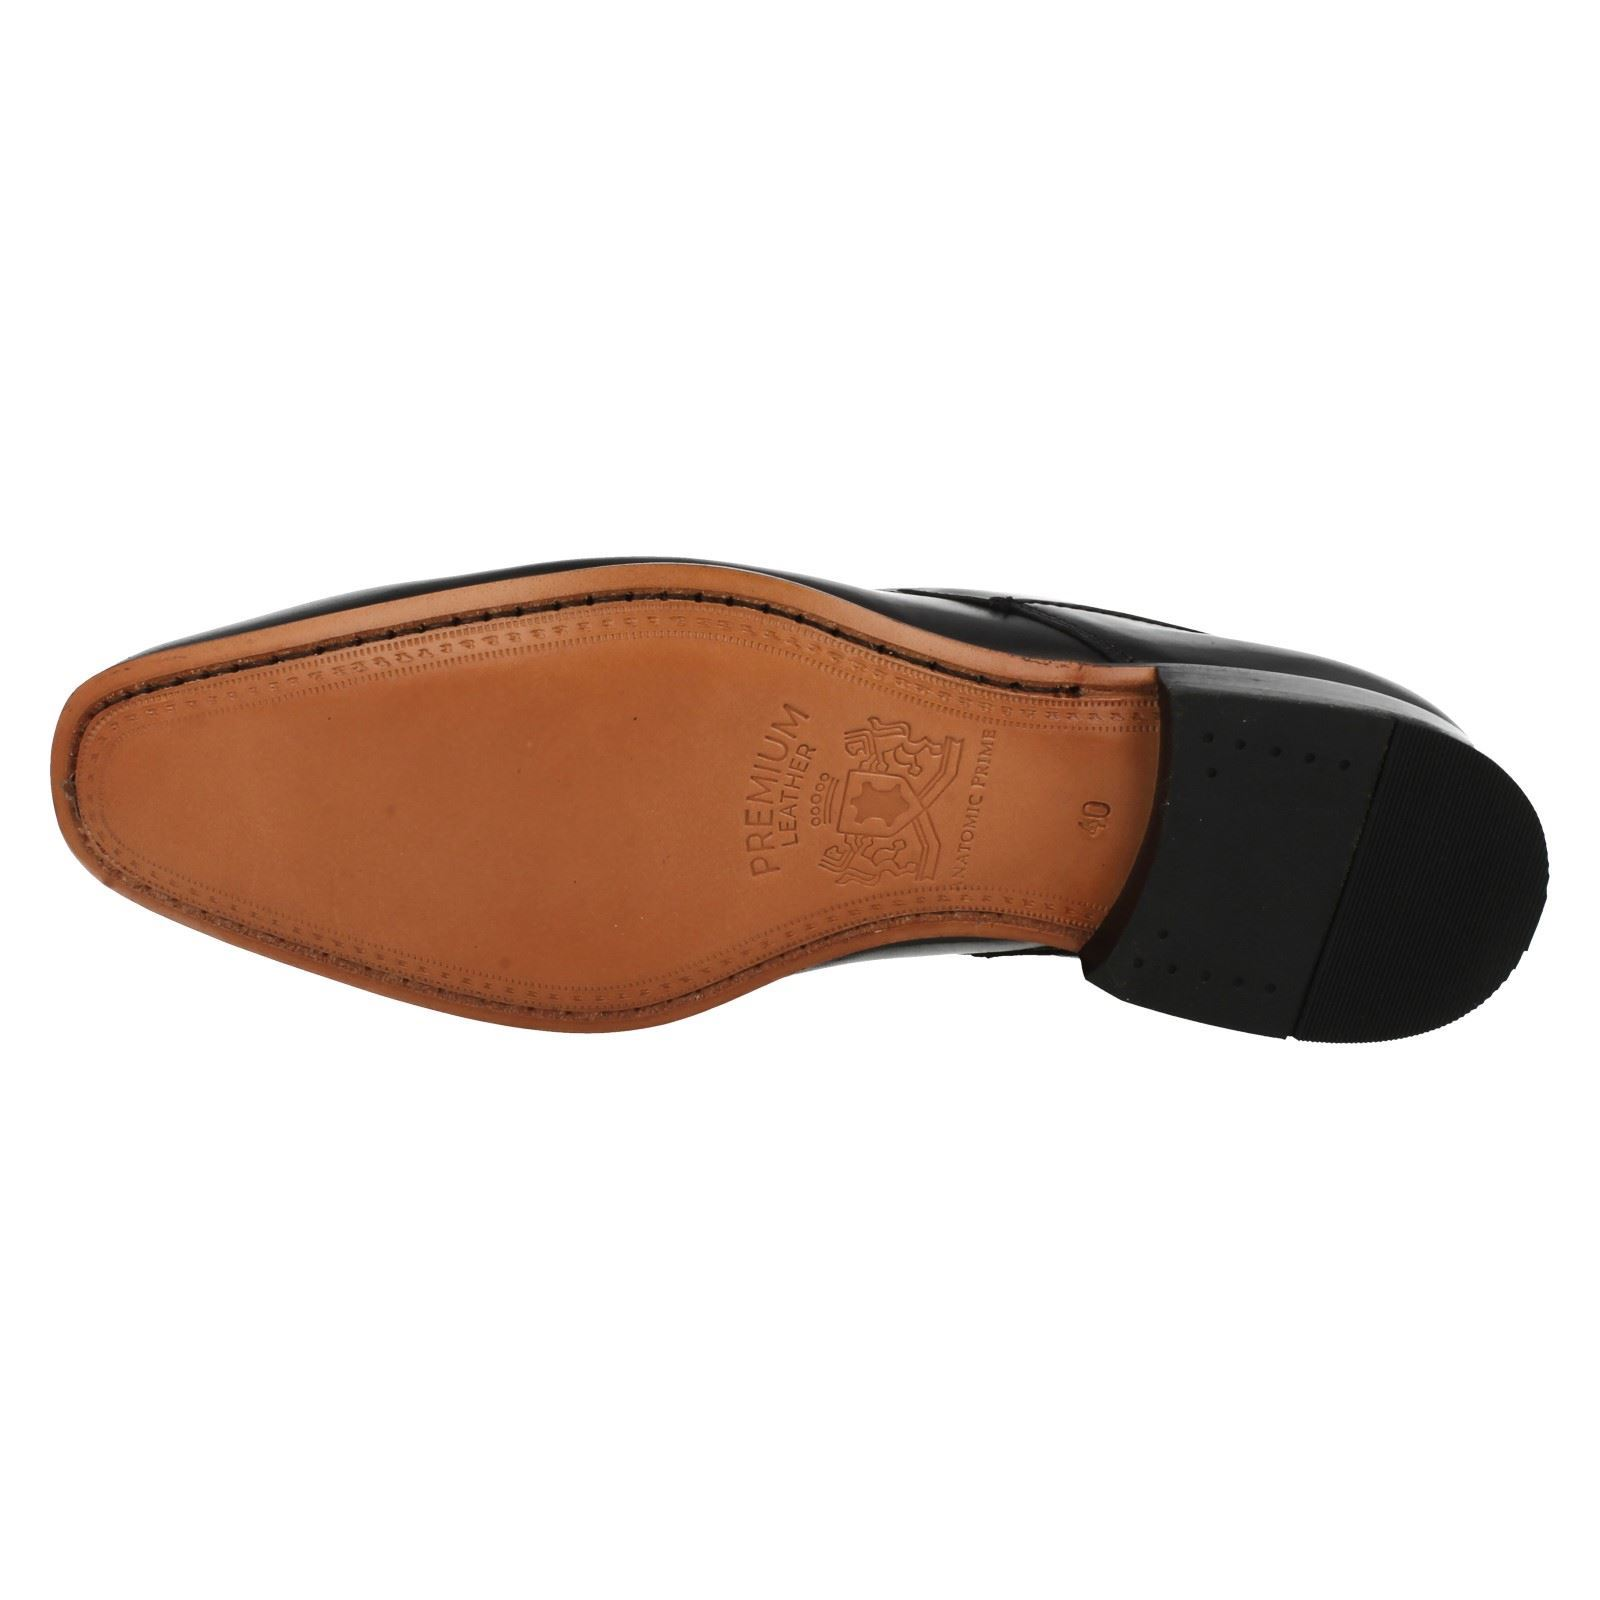 Herren Anatomic  Formal Schuhes Schuhes Formal Label - Salvador 2 d002f5